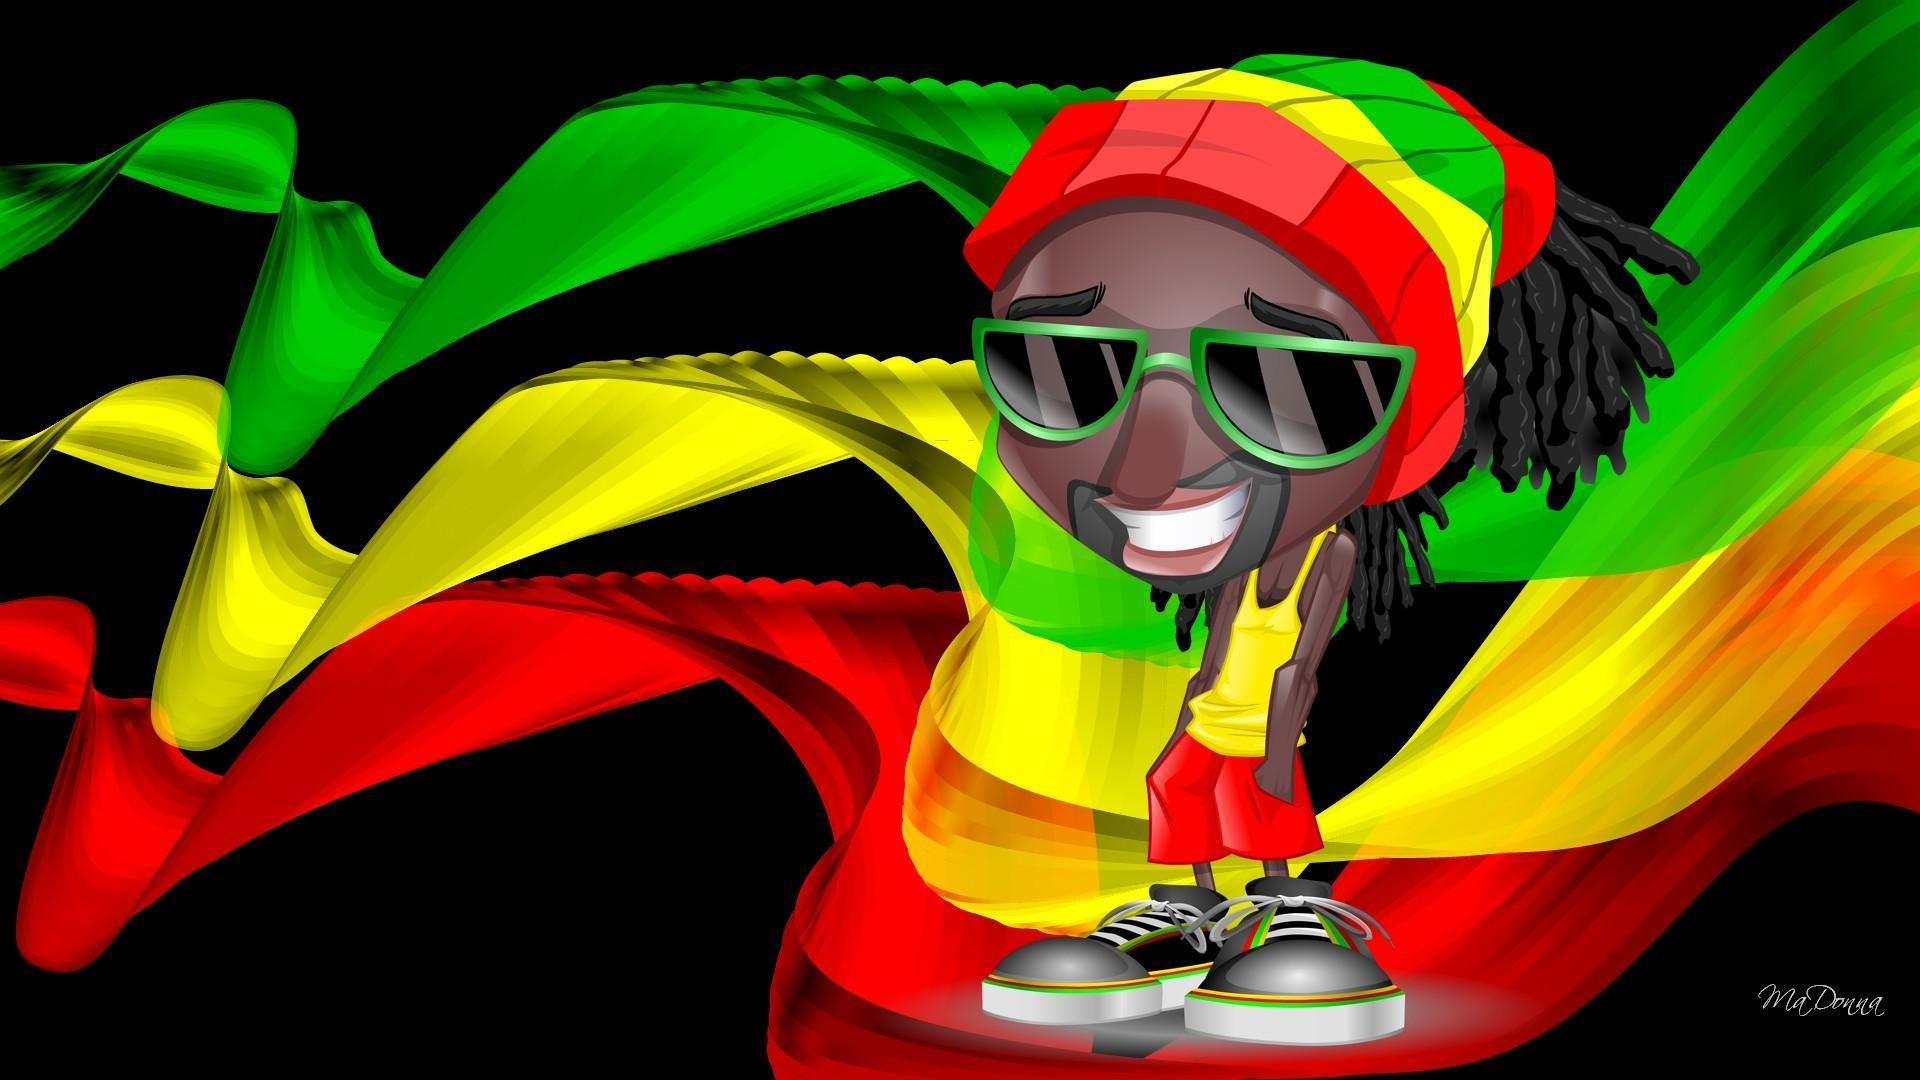 Reggae Wallpapers Layouts Backgrounds - Wallpaper Cave